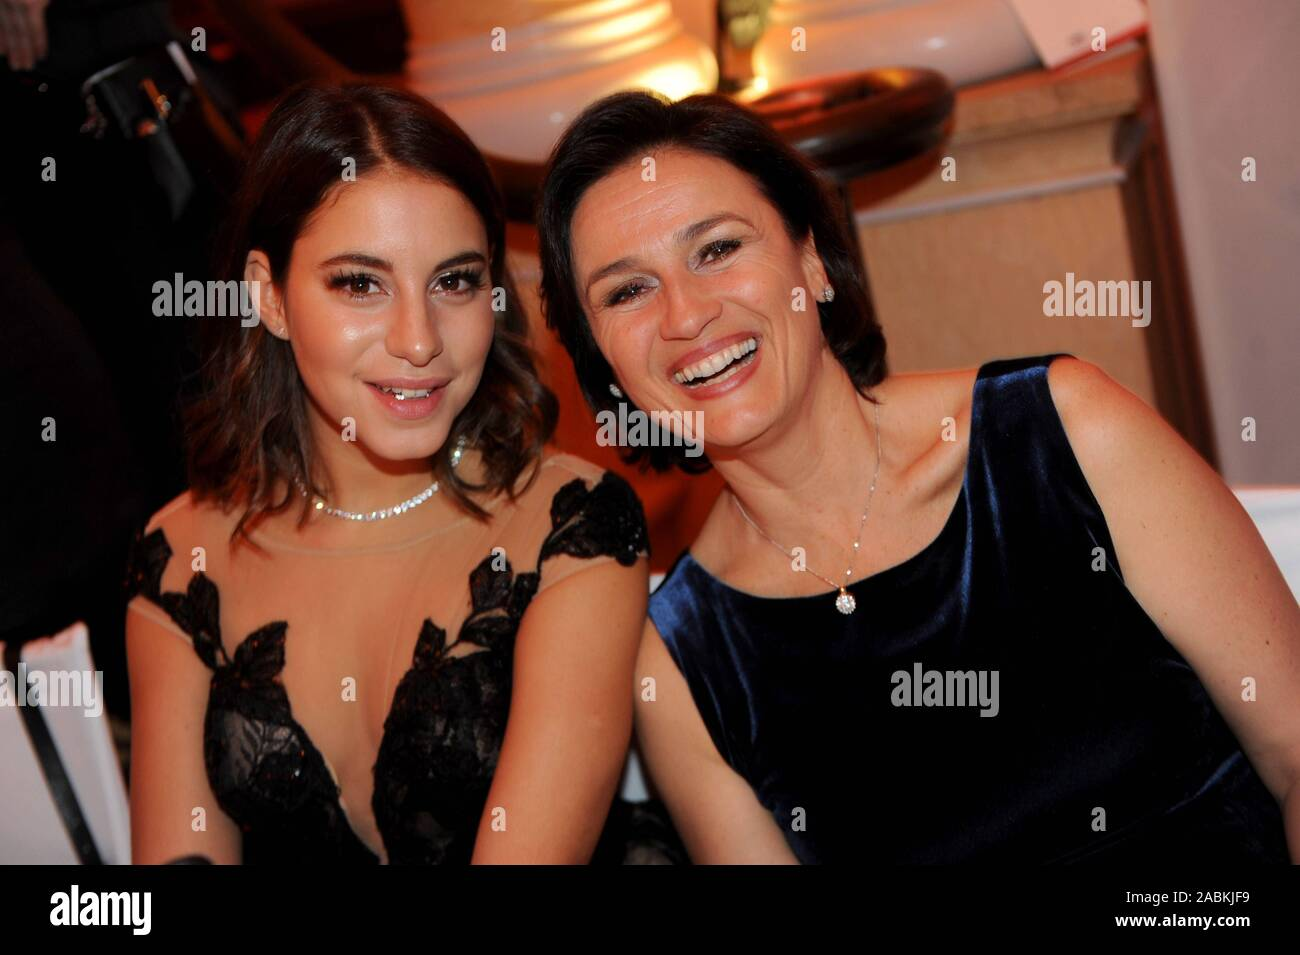 Sandra Maischberger (r.) at the 46th German Film Ball at the Hotel Bayerischer Hof in Munich. [automated translation] Stock Photo